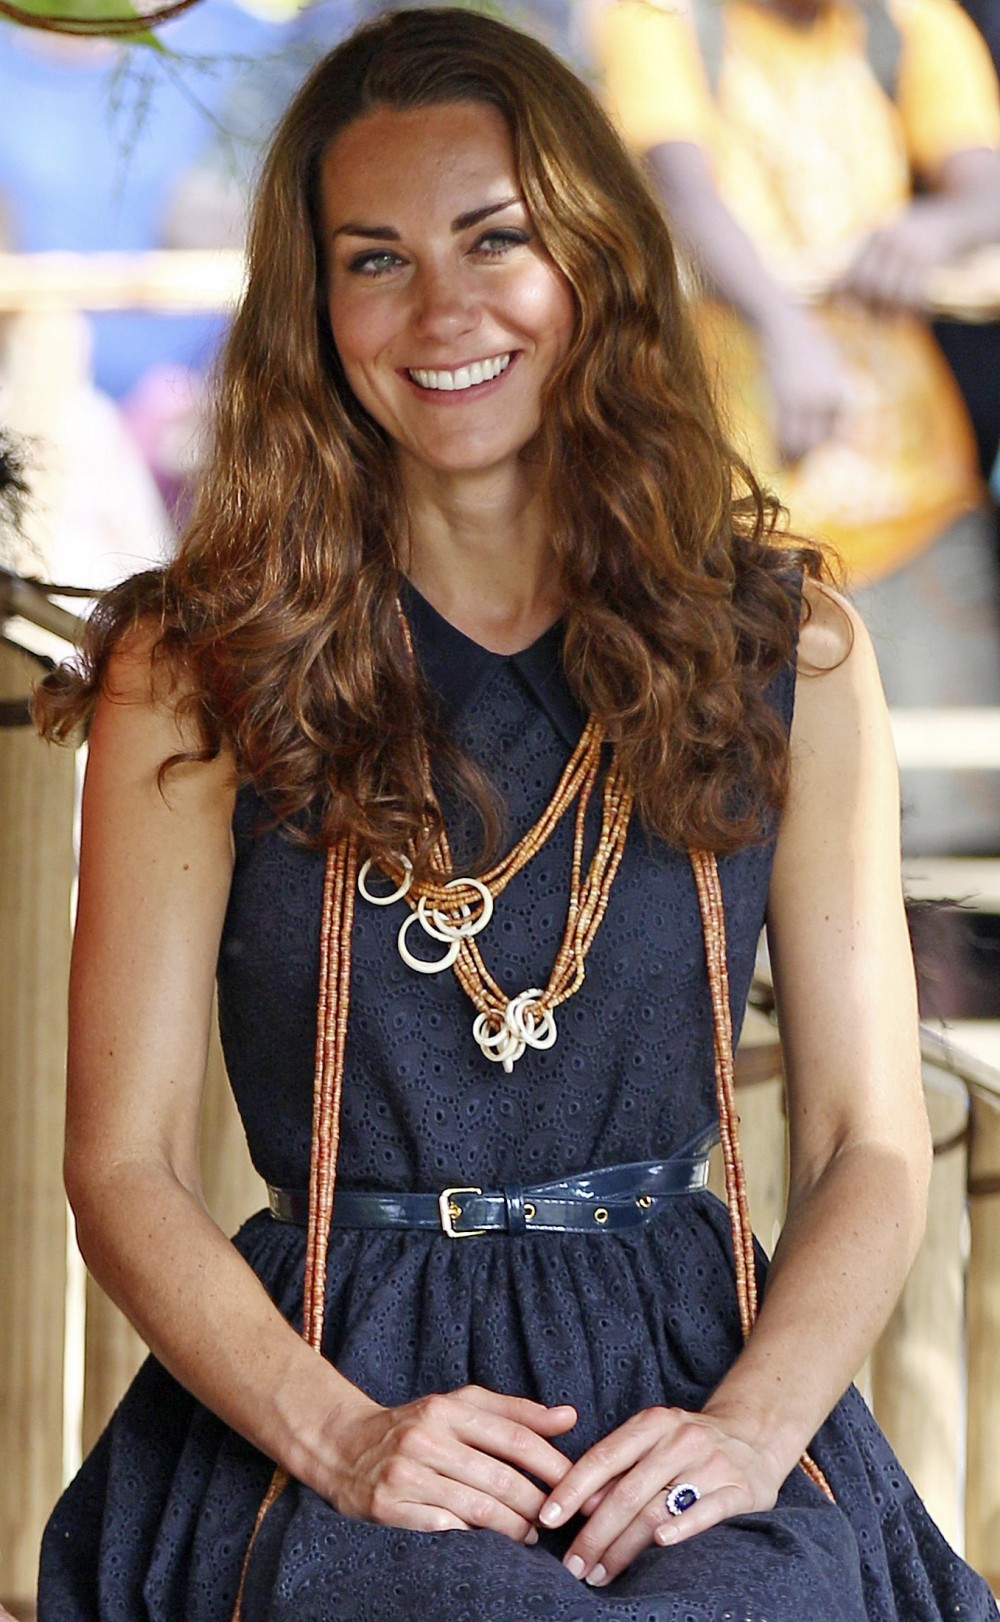 325352-kate-middleton-s-new-do-with-bangs-vs-no-bangs